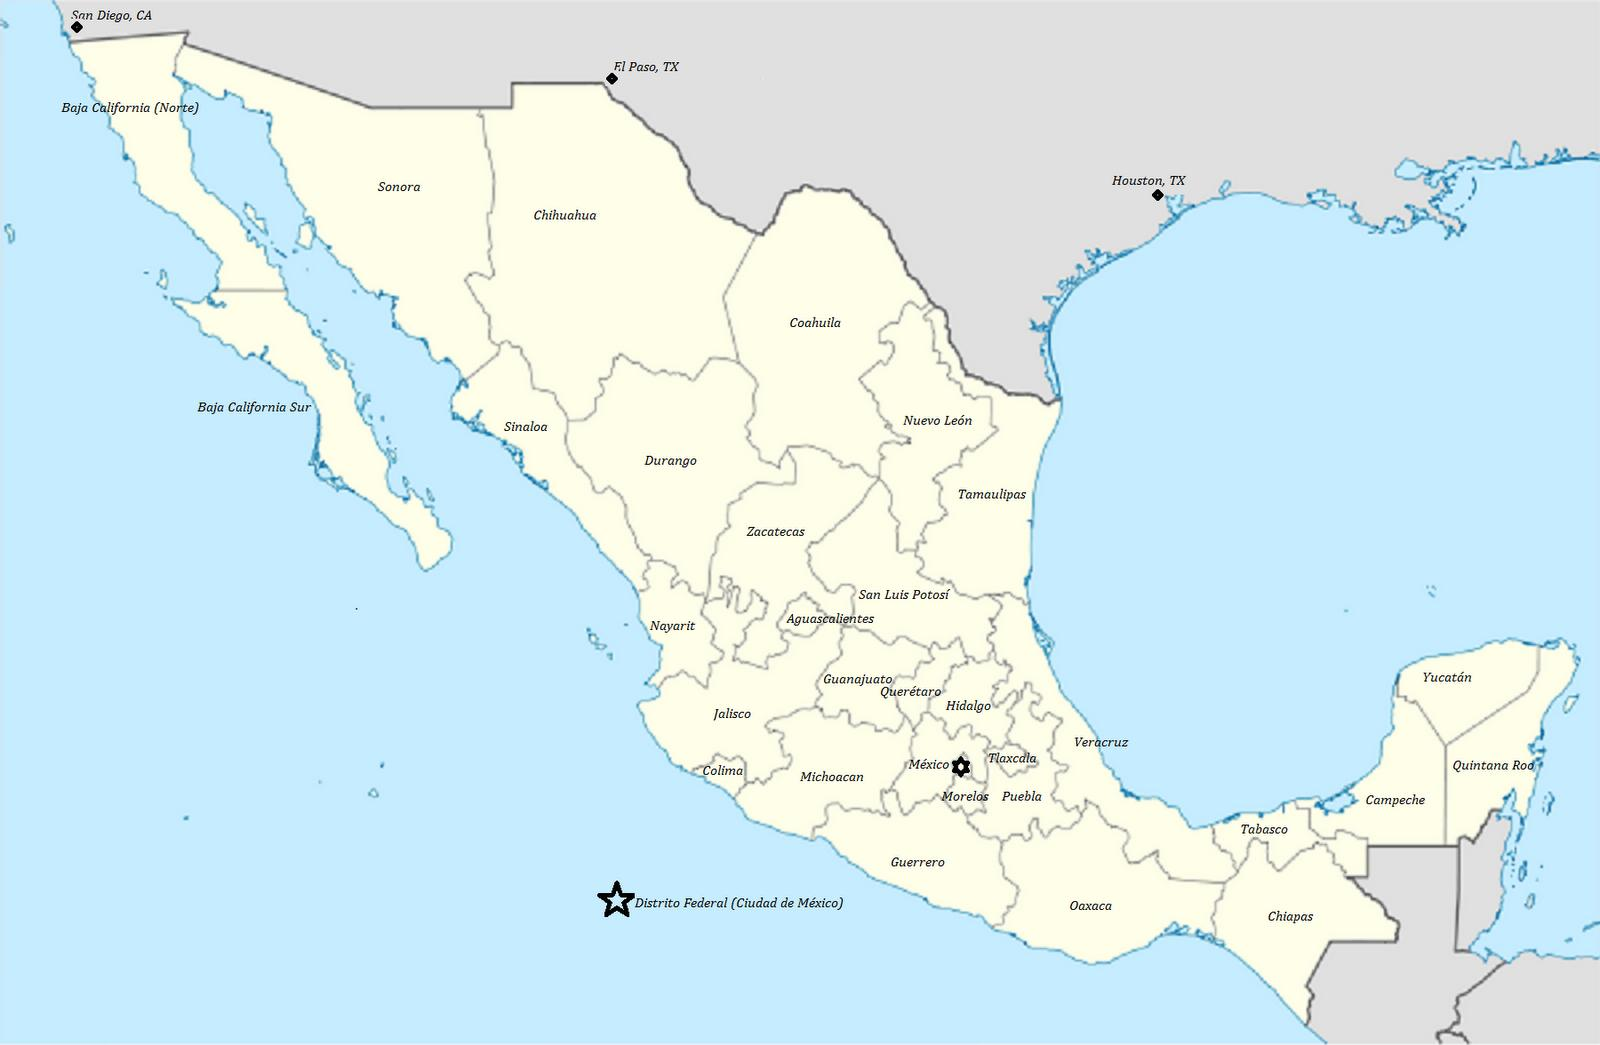 Mexico states map - States of Mexico map (Central America - Americas)